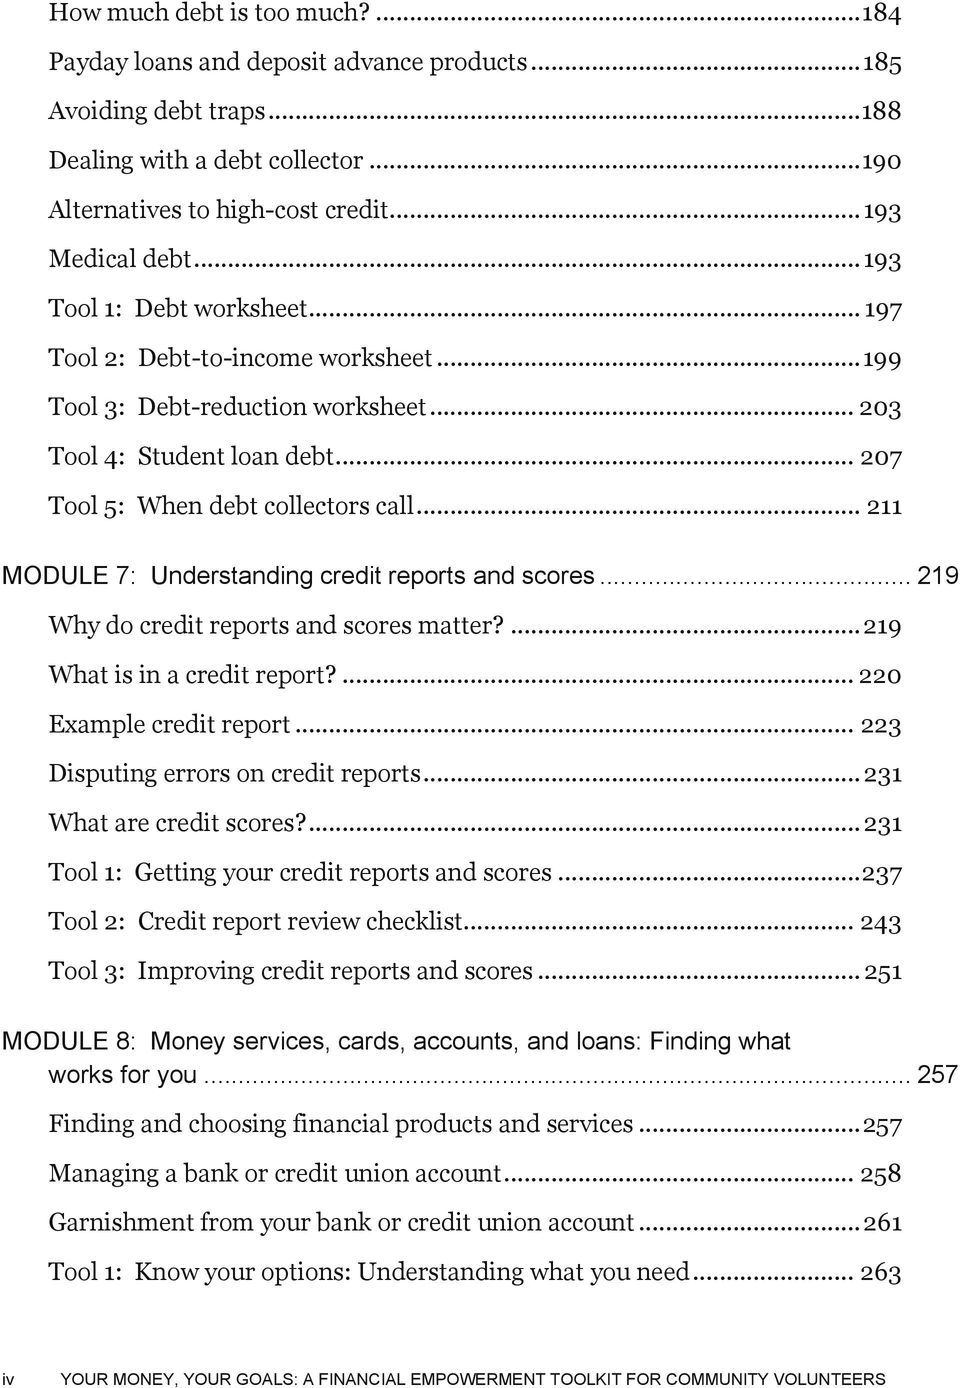 .. 211 MODULE 7: Understanding credit reports and scores... 219 Why do credit reports and scores matter?... 219 What is in a credit report?... 220 Example credit report.